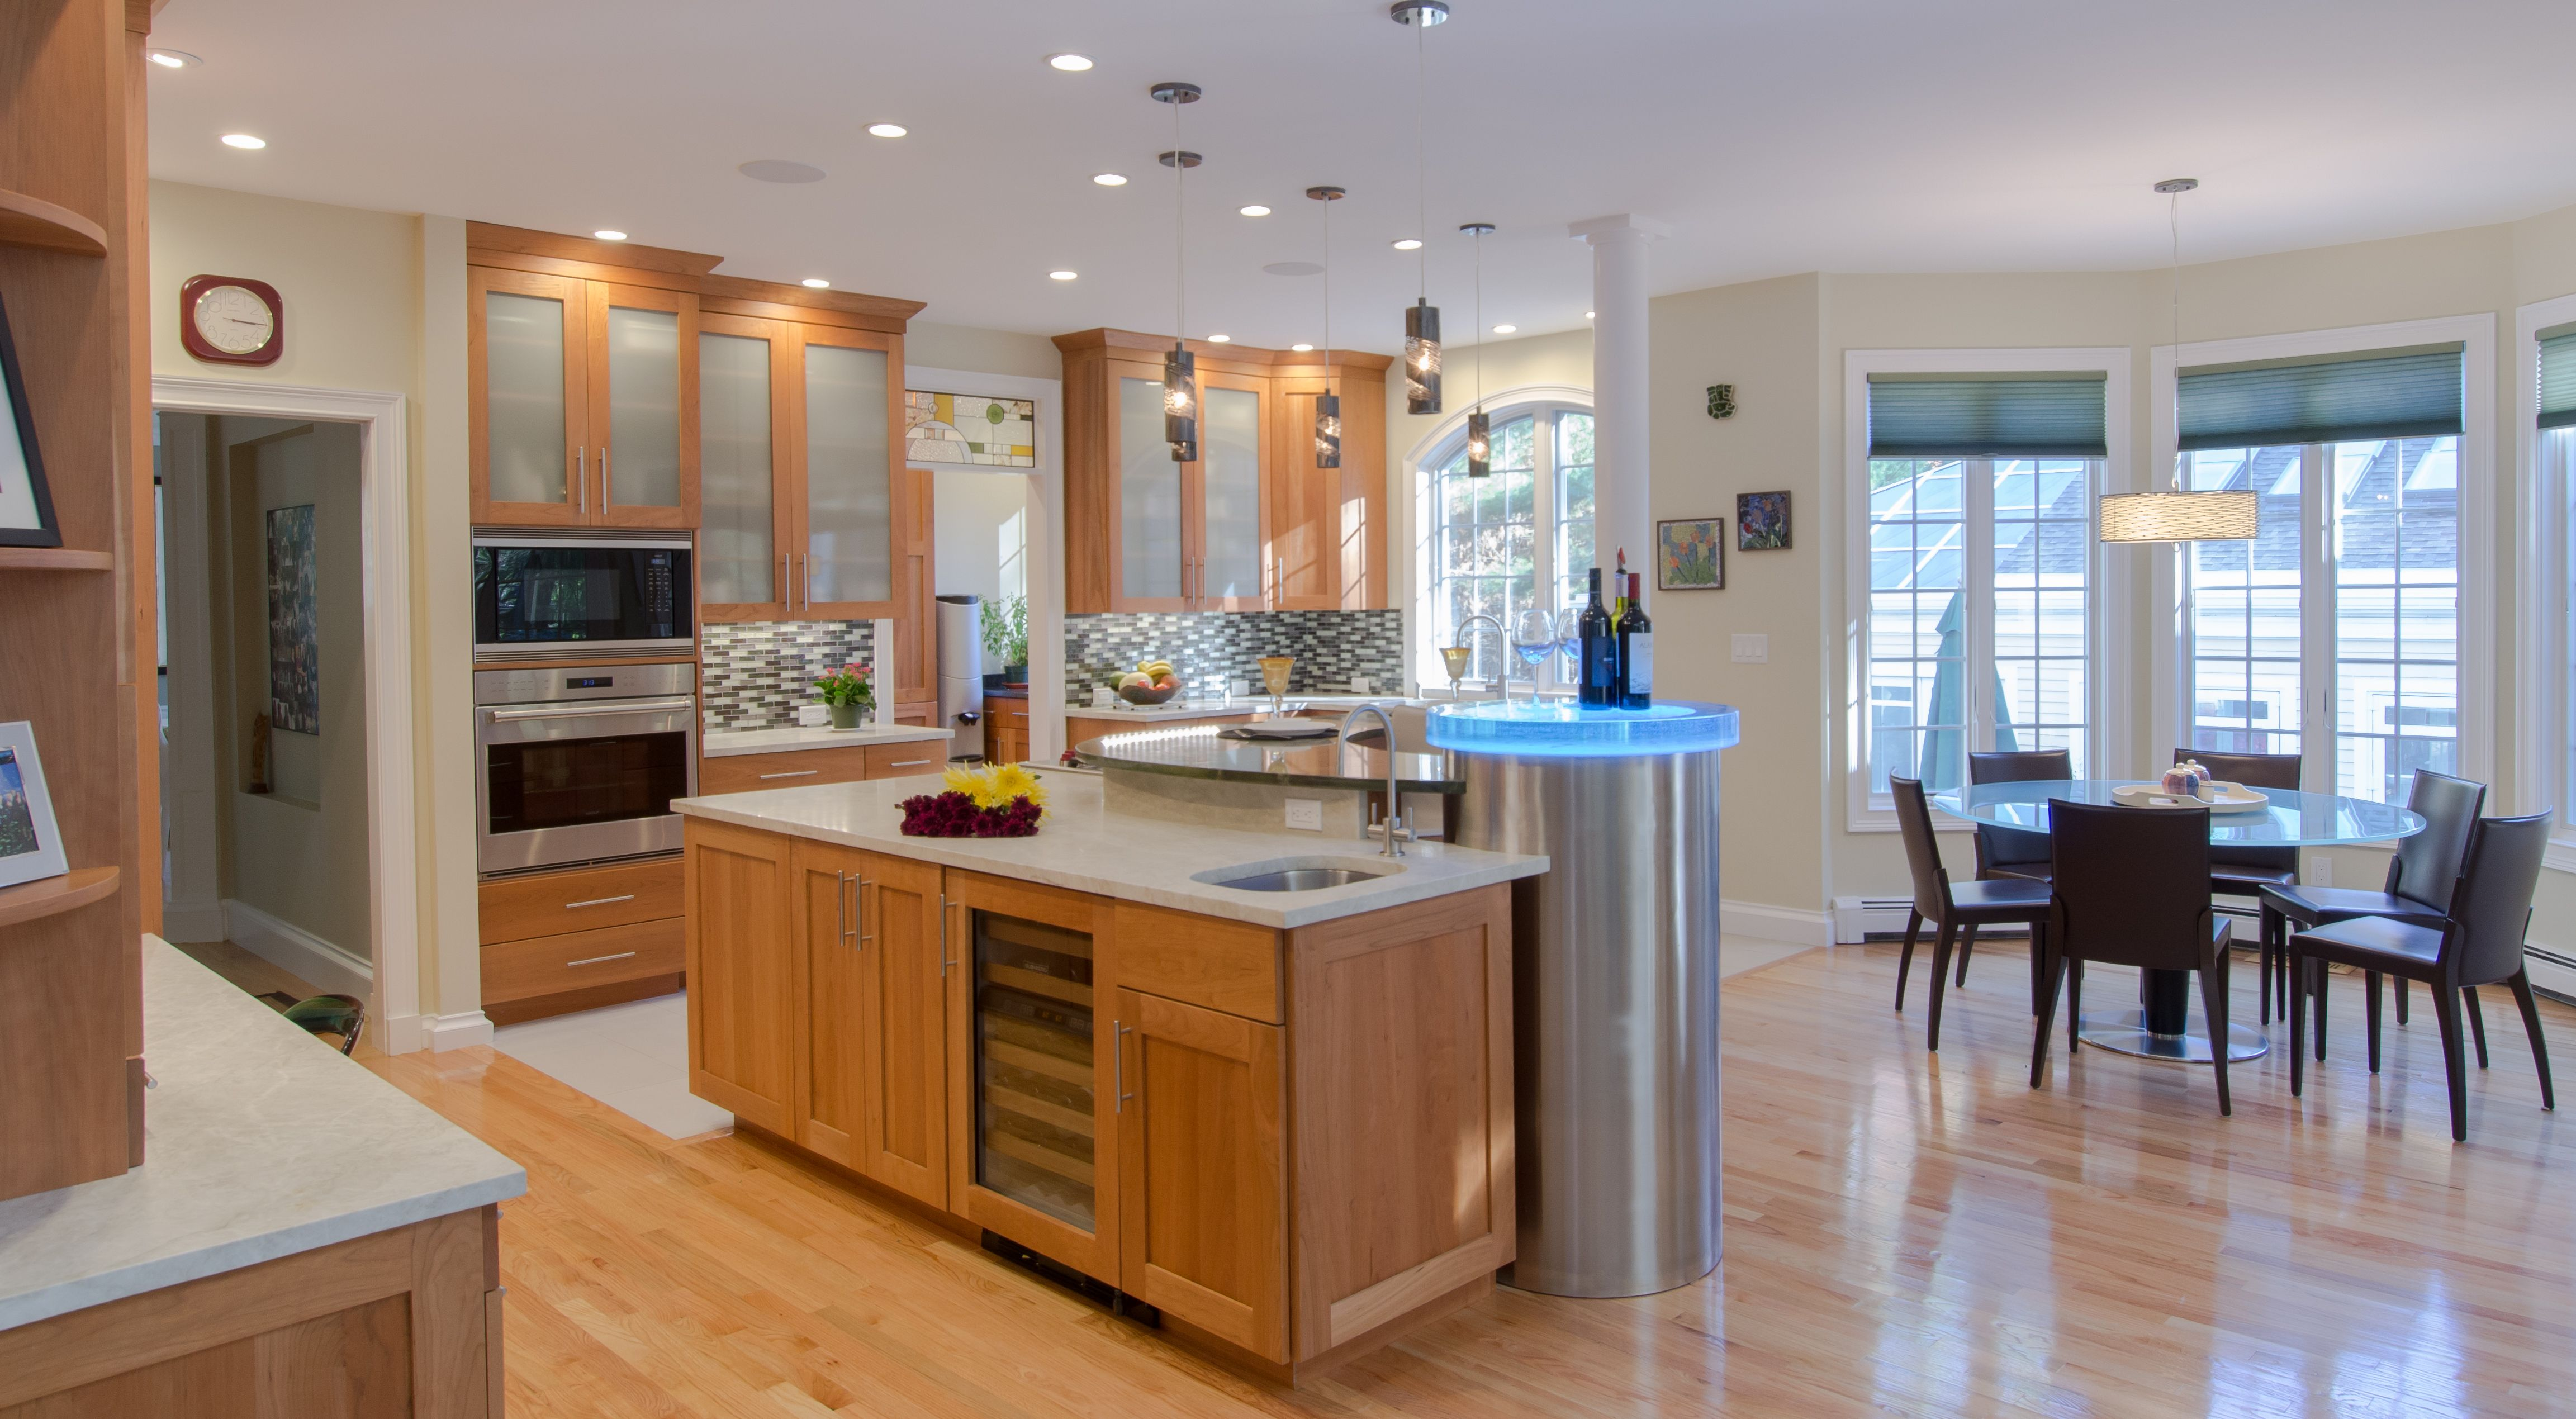 Cherry Wood Kitchen Natural Cherry Cabinets Granite Countertop Frosted Glass Built In Appliances Island Seat Kitchen Transitional Kitchen Kitchen Remodel